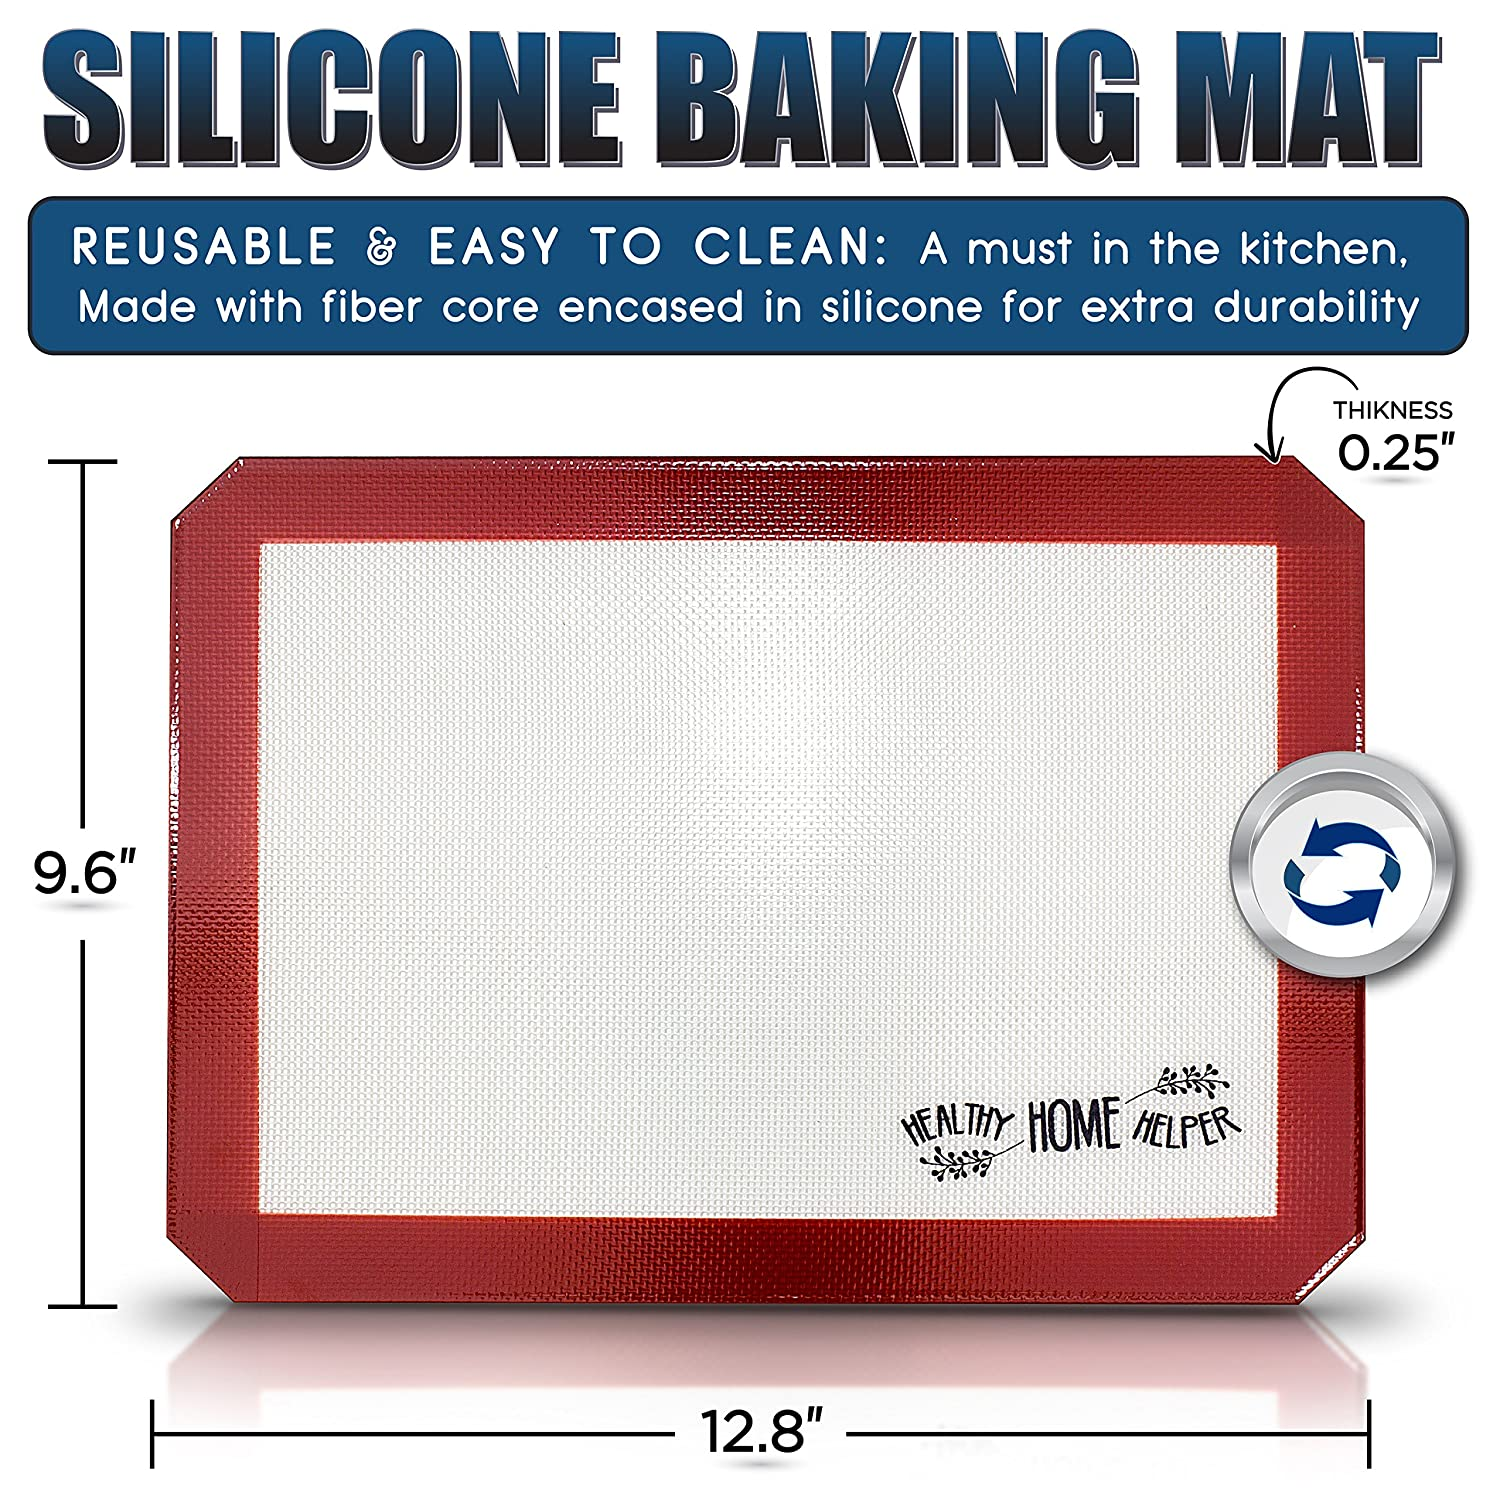 Sheet Pan 15.5 X 11.5 and Cake. Extra Durable Cookie Sheet Vegetables for Roasting Bacon Oven Safe Non-Toxic Heavy Duty Bake Ware Stainless Steel Sheet Pan 15.5 x 11.5 inch